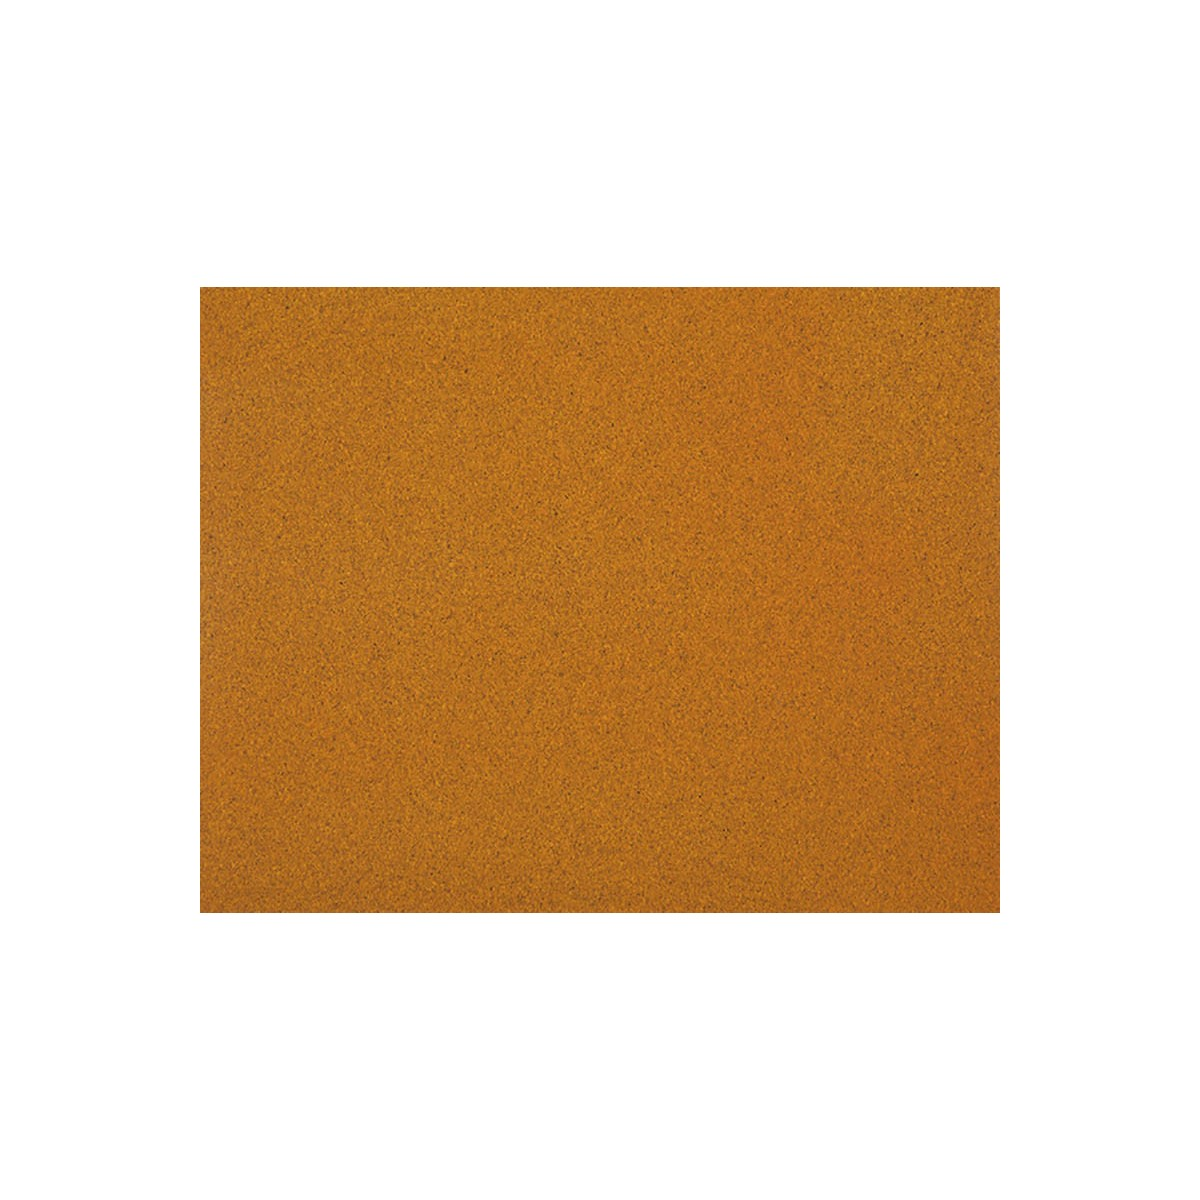 Cork fabric Natural Orange